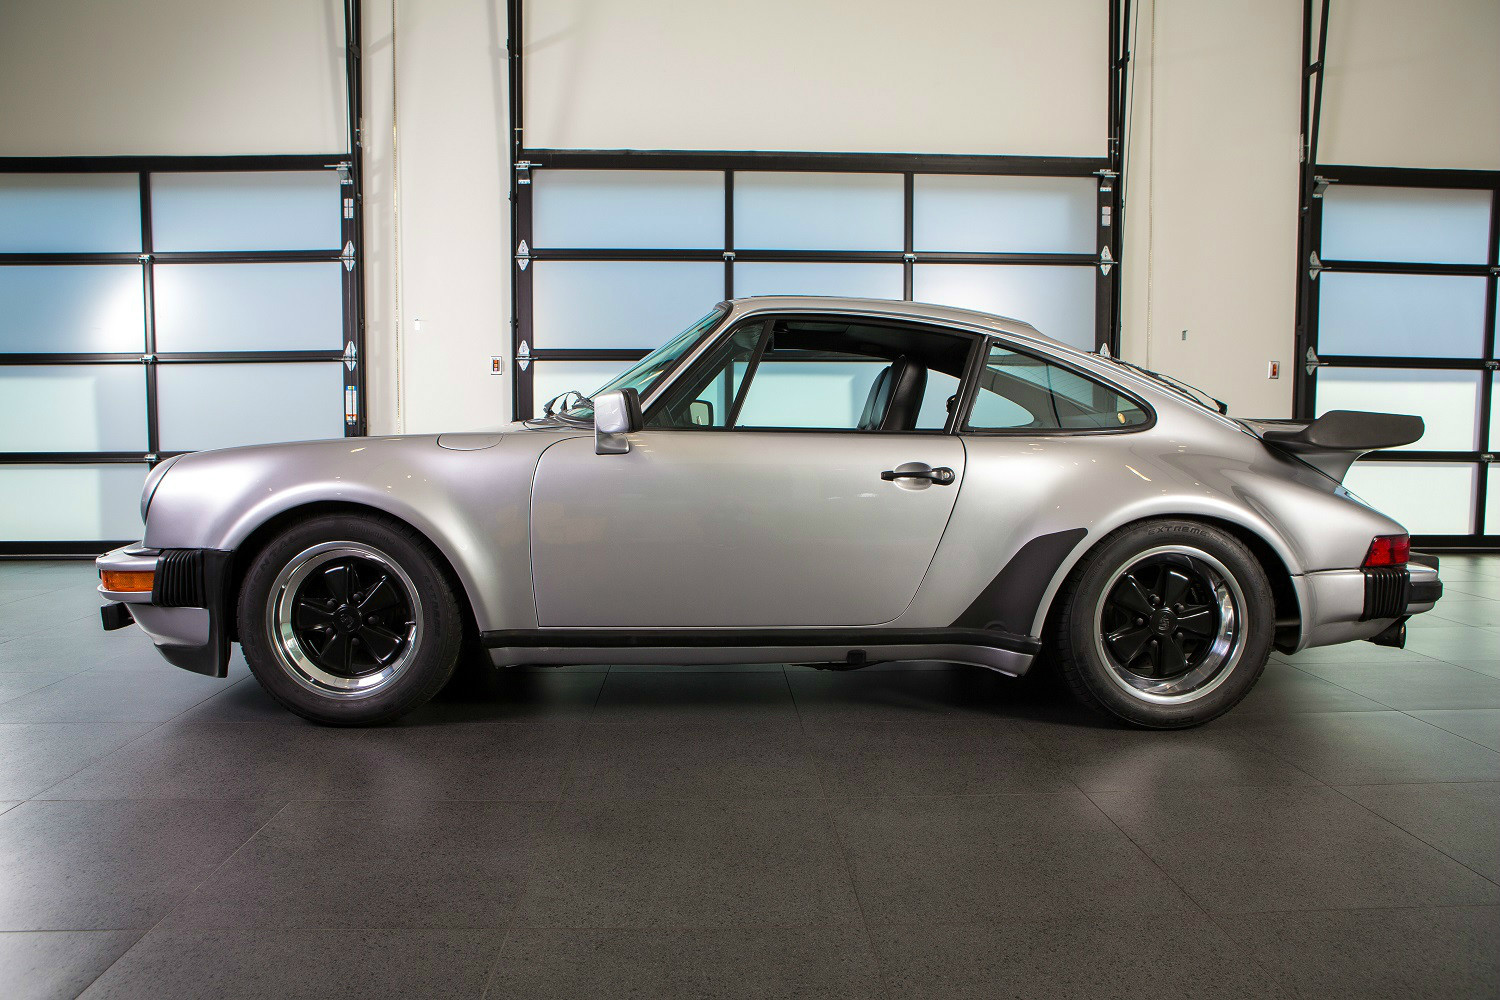 Porsche 930 For Sale >> 1979 Porsche 911 Turbo (930) | Gaudin Classic